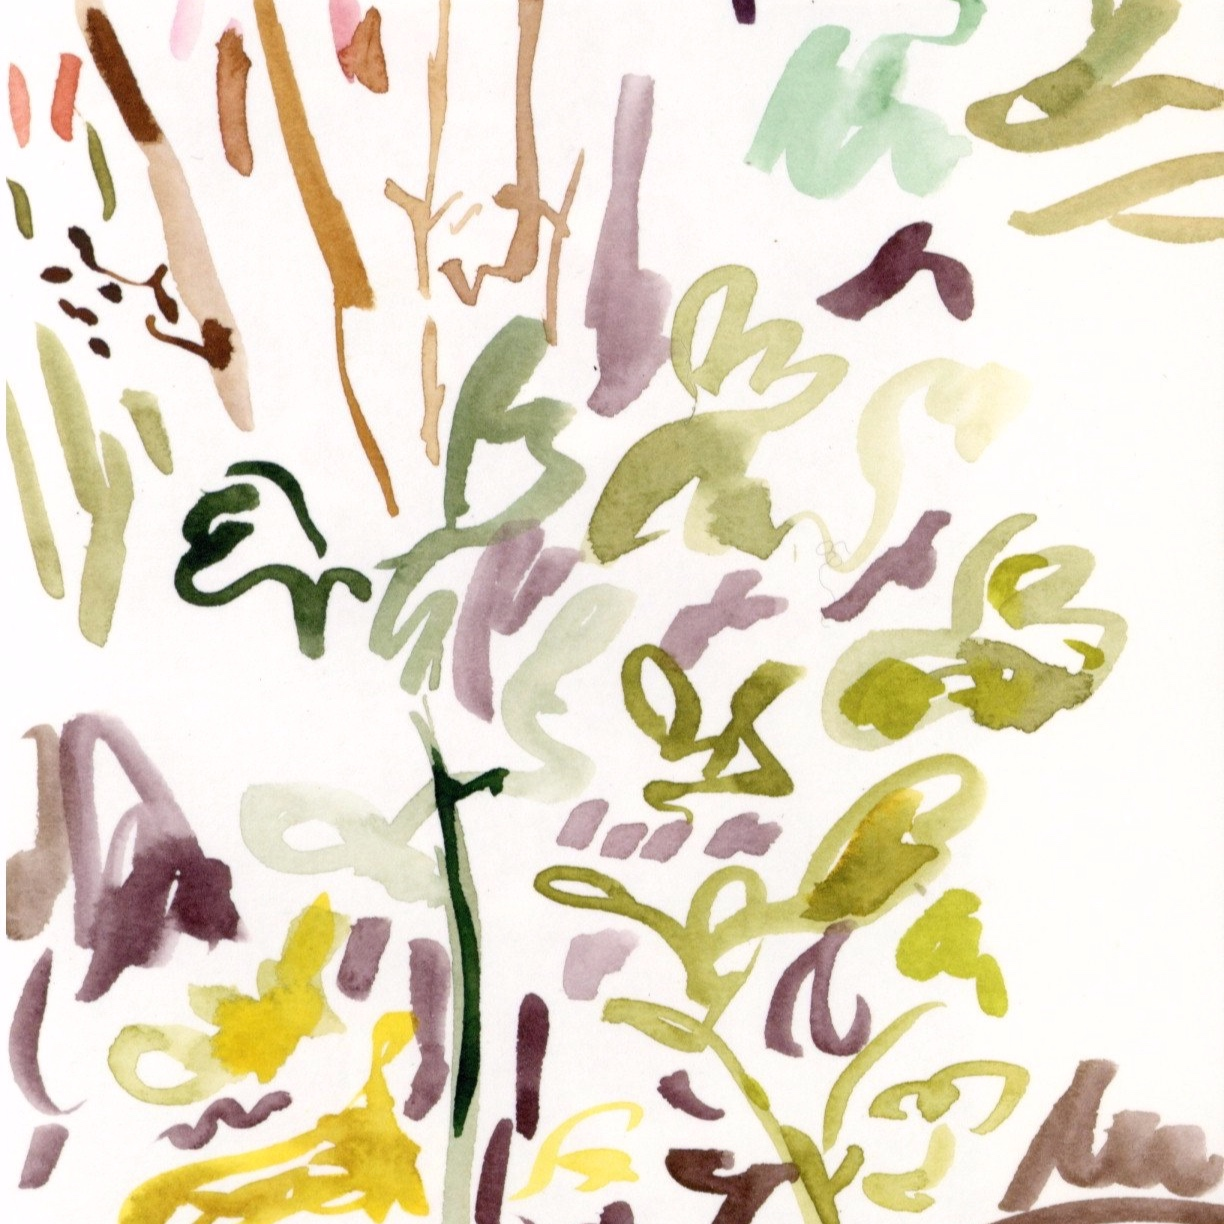 outdoor watercolor20181005_12403295.jpg